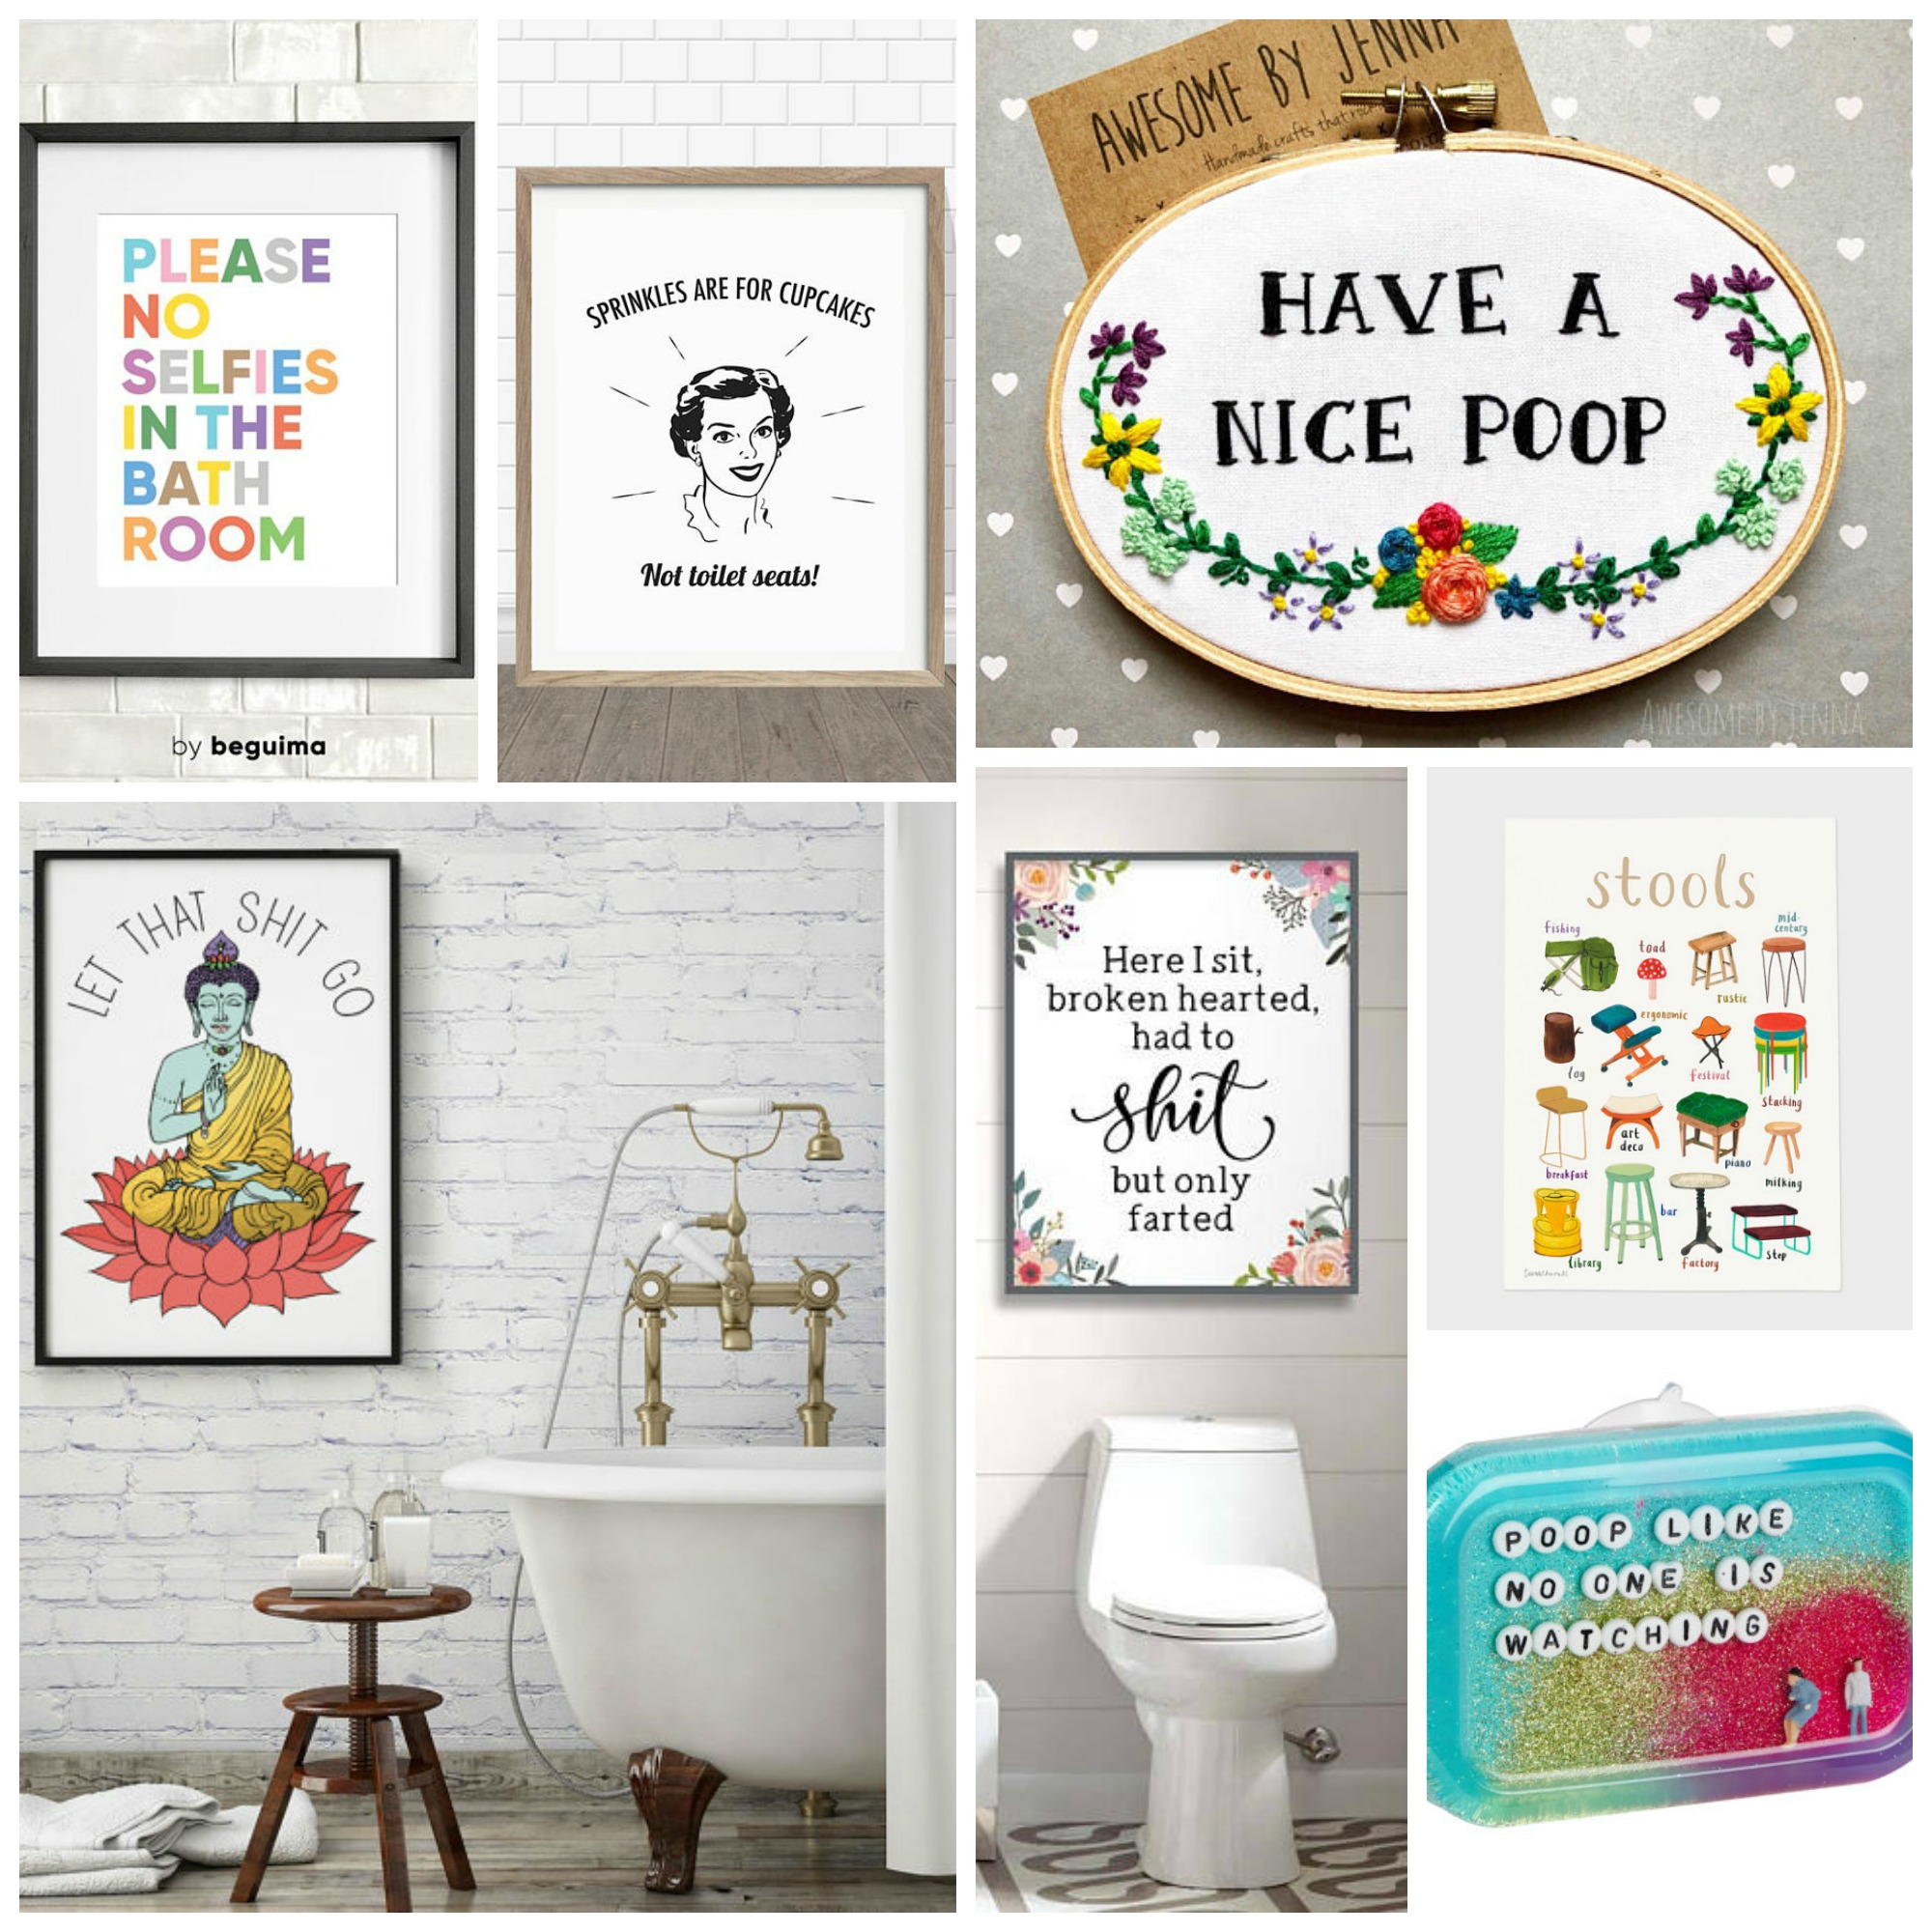 Awesomely Hilarious Bathroom Art For Your Home, Ultimate Bathroom Gallery Wall.